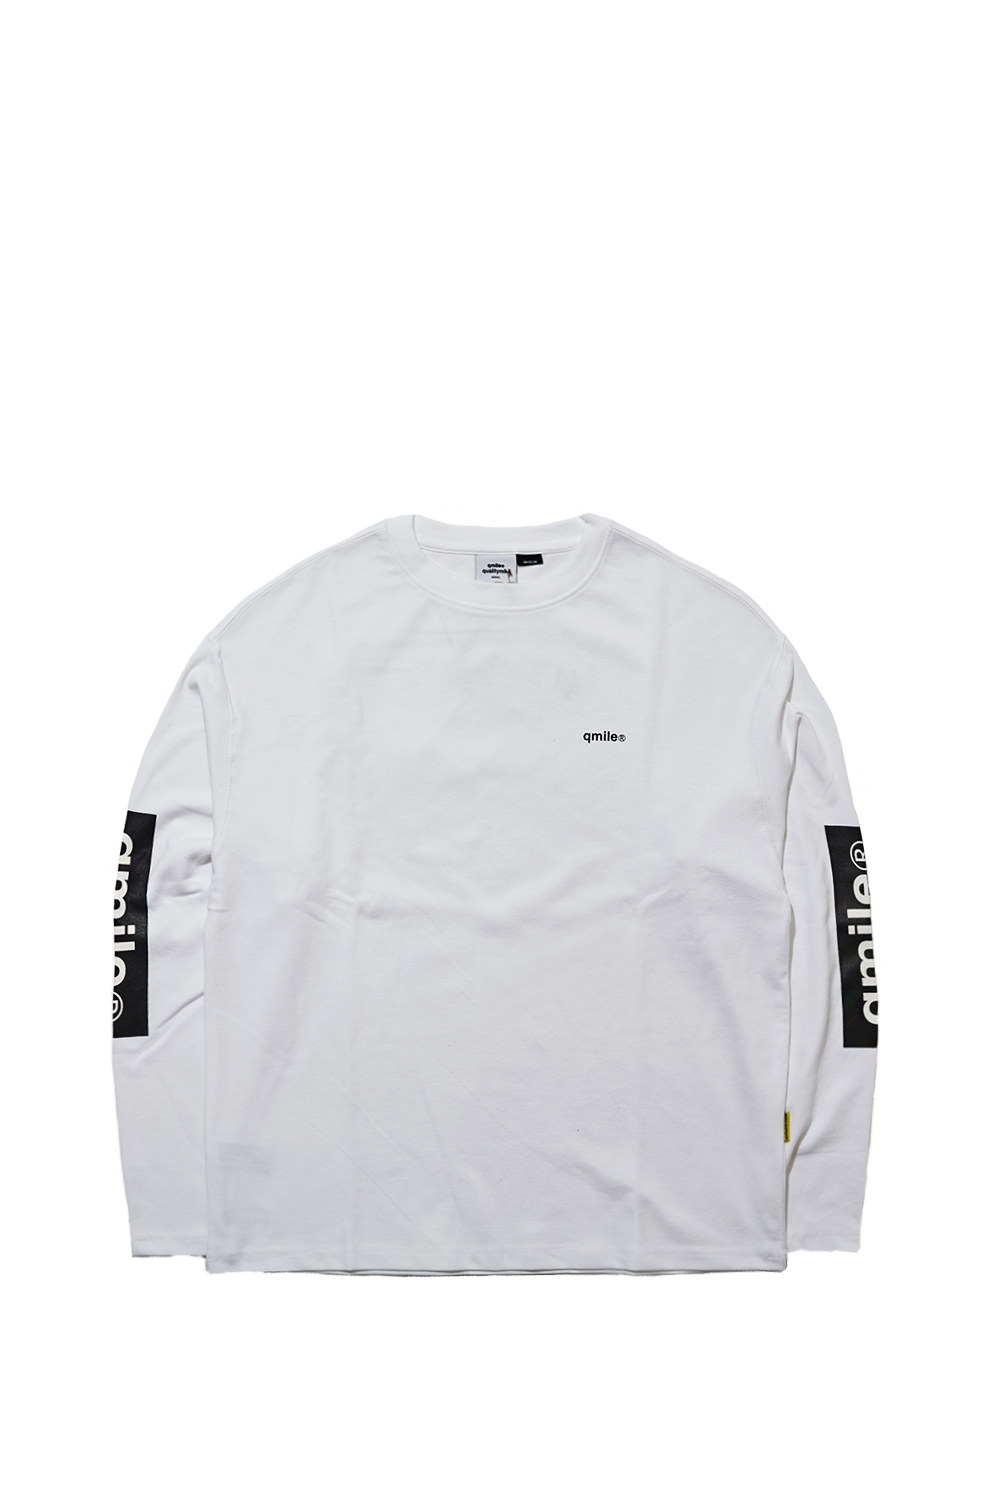 SLEEVE BANNER LONG SLEEVE | WHITE